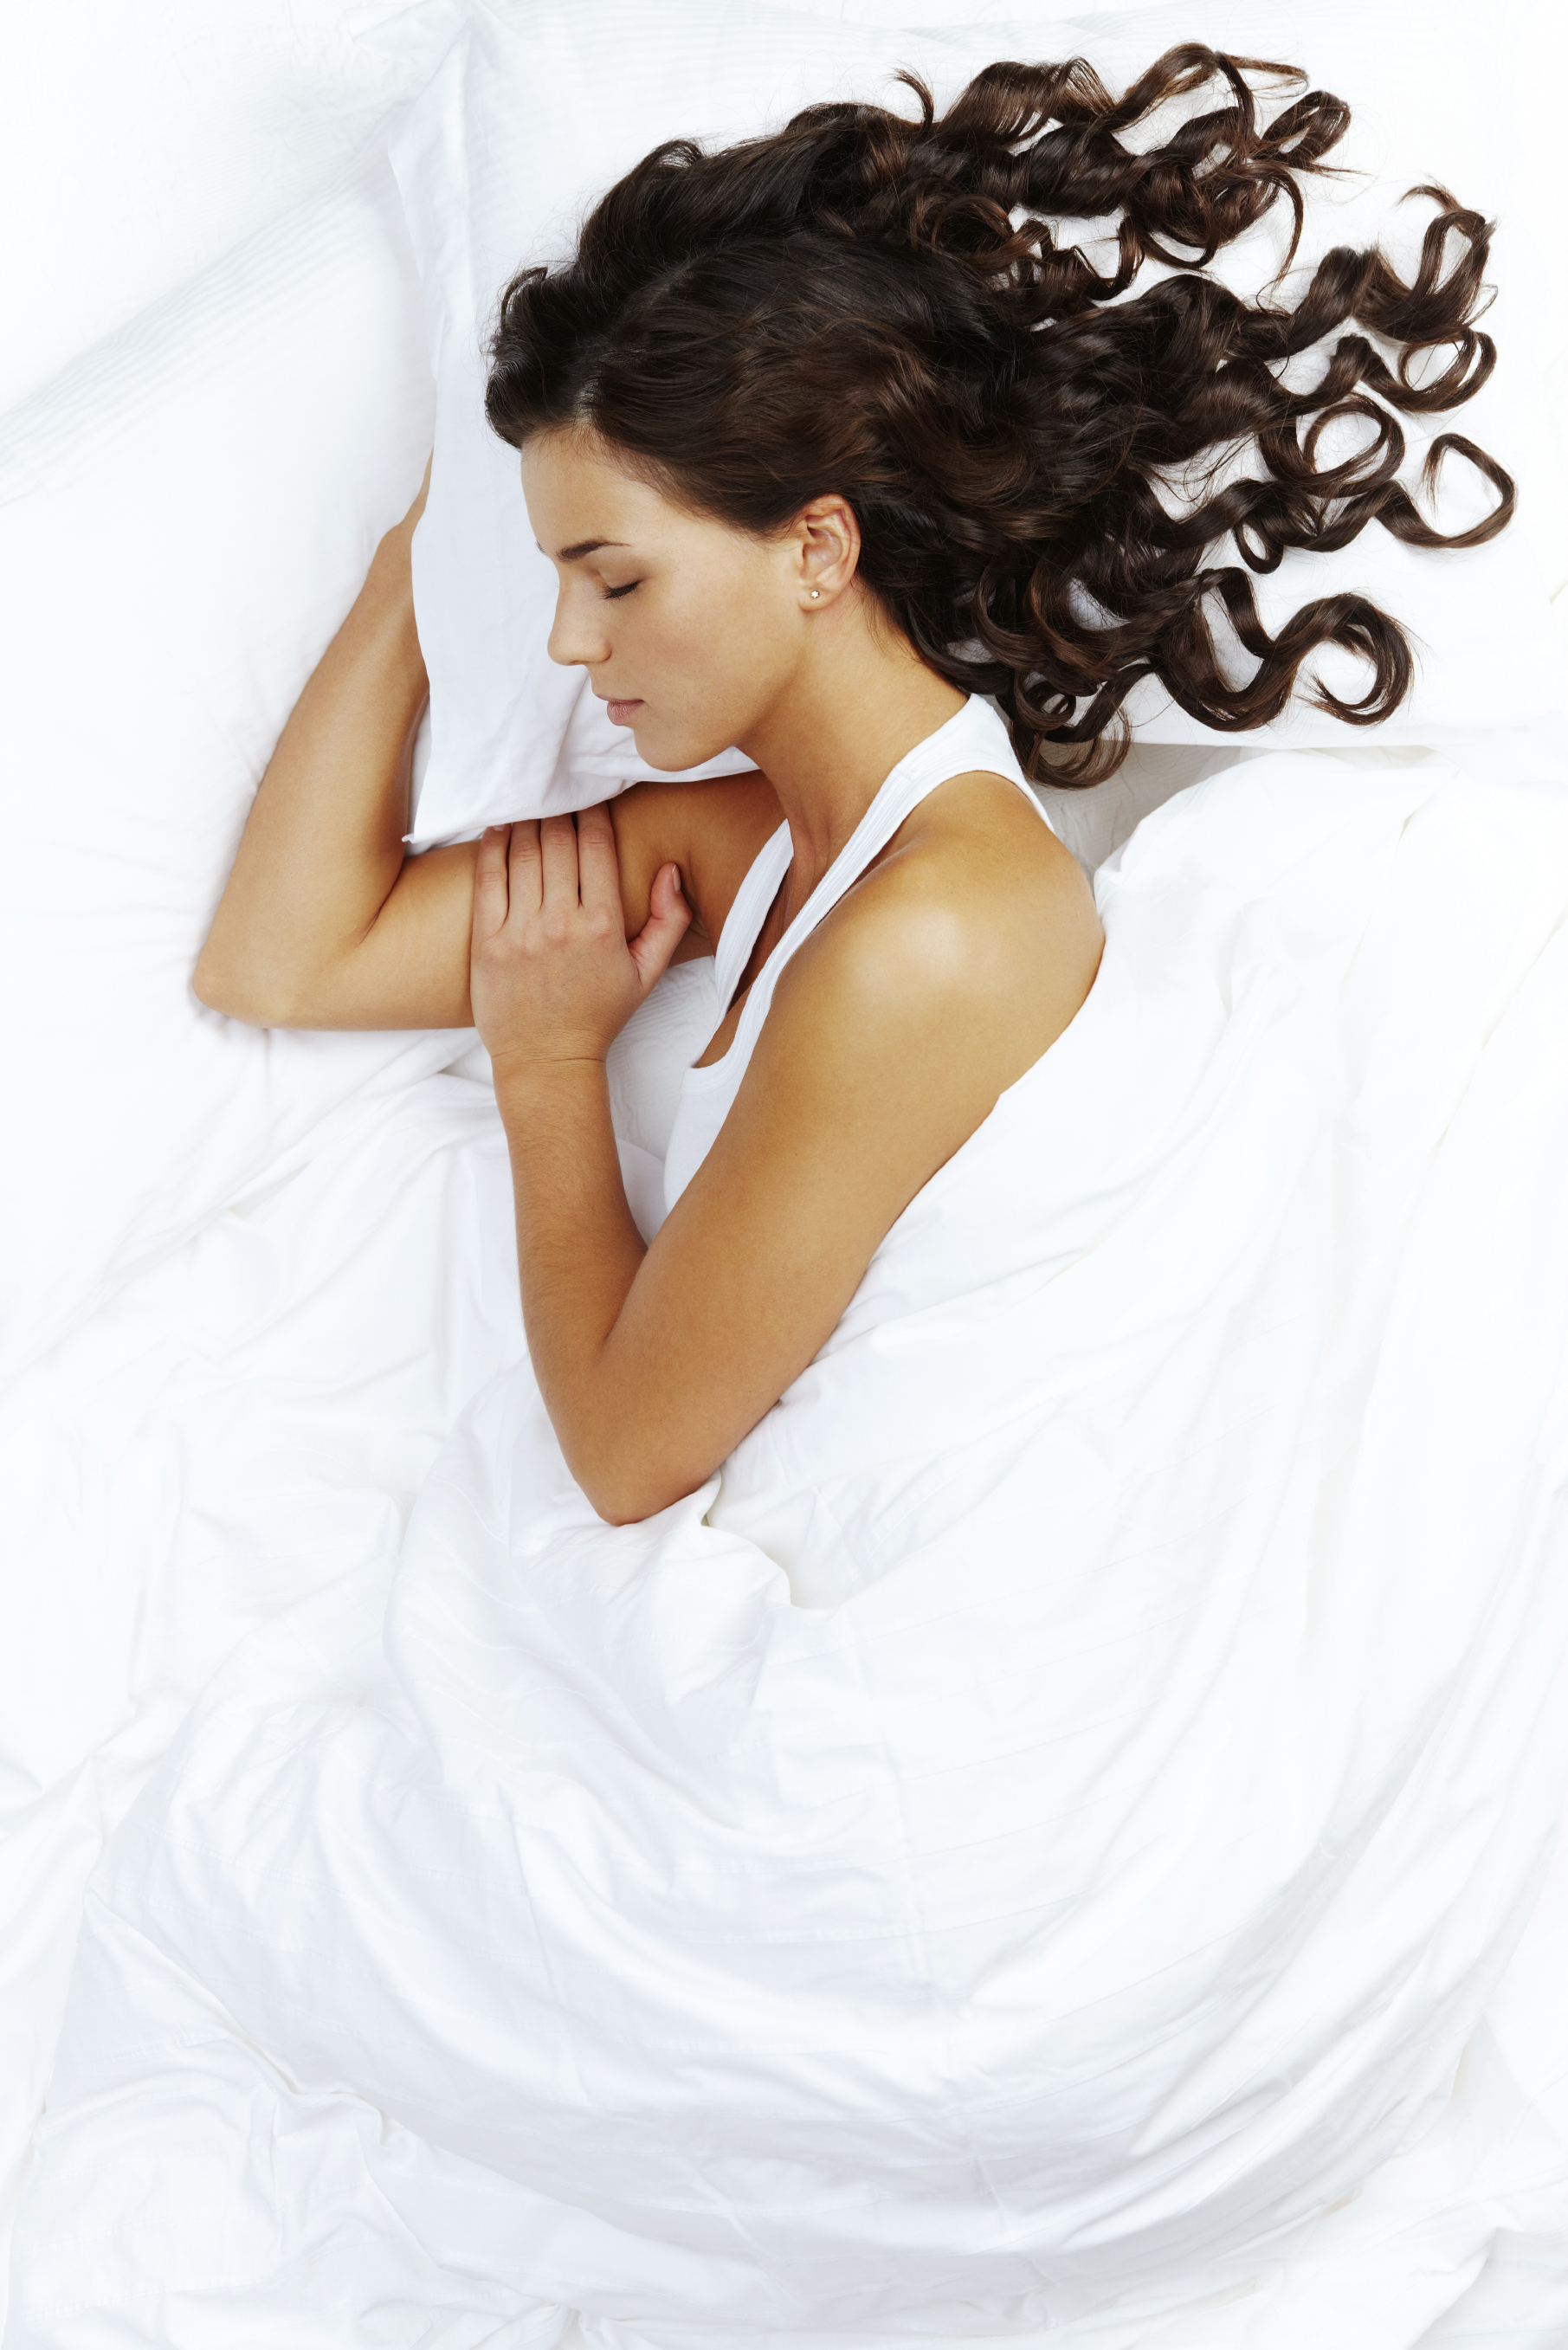 Try These 17 Tips for Better Sleep (and More Energy When You're Awake!)